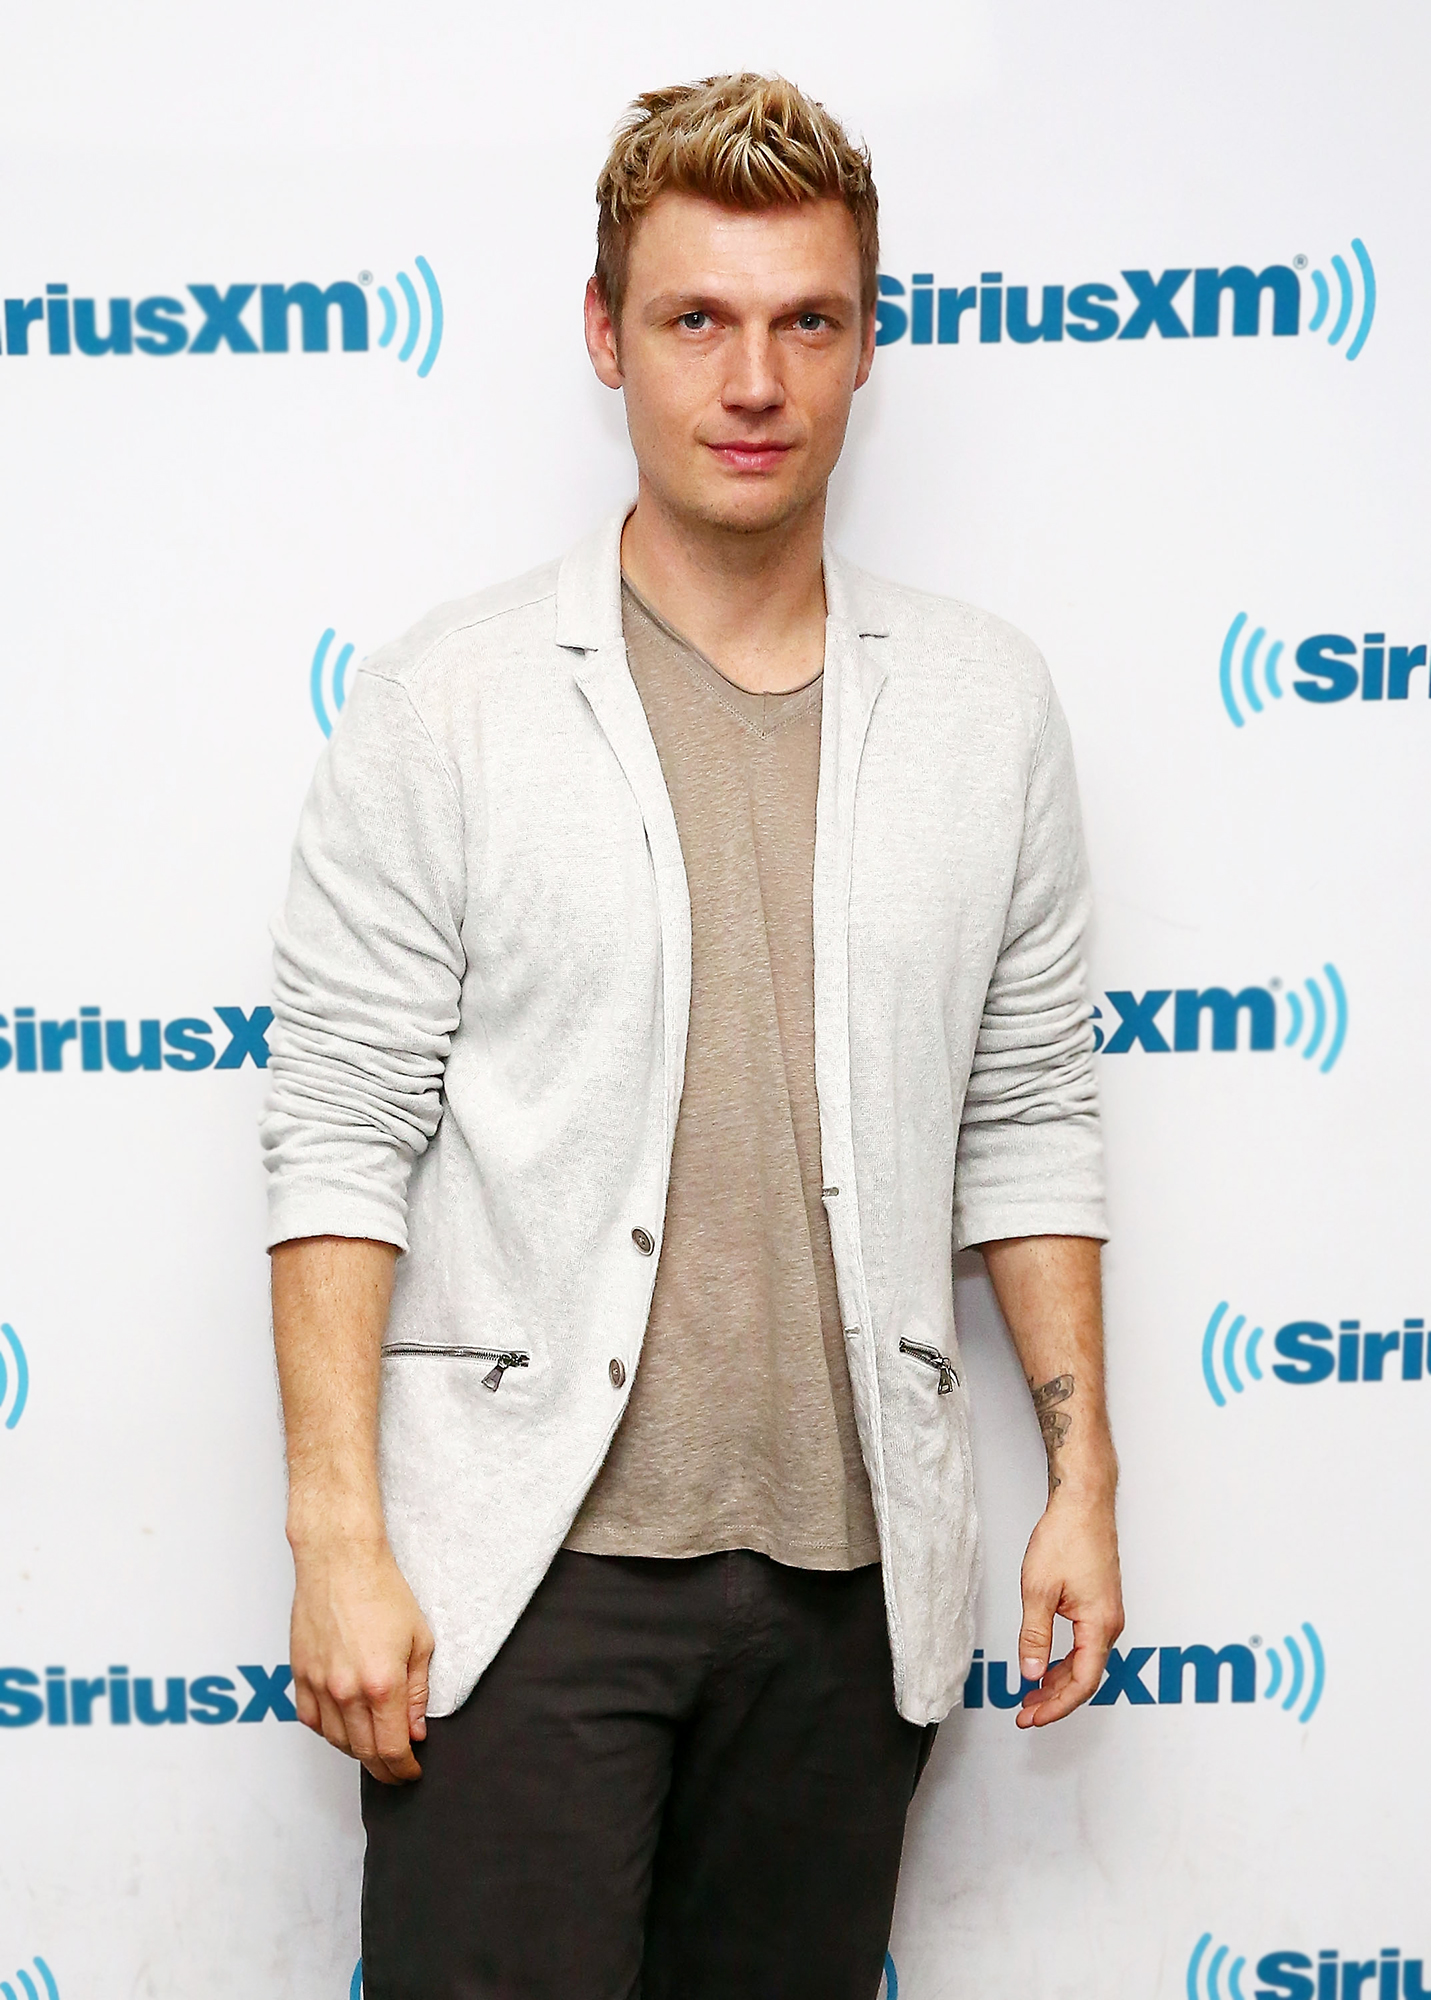 Nick Carter's Sexual Assault Allegation Under Review by L A